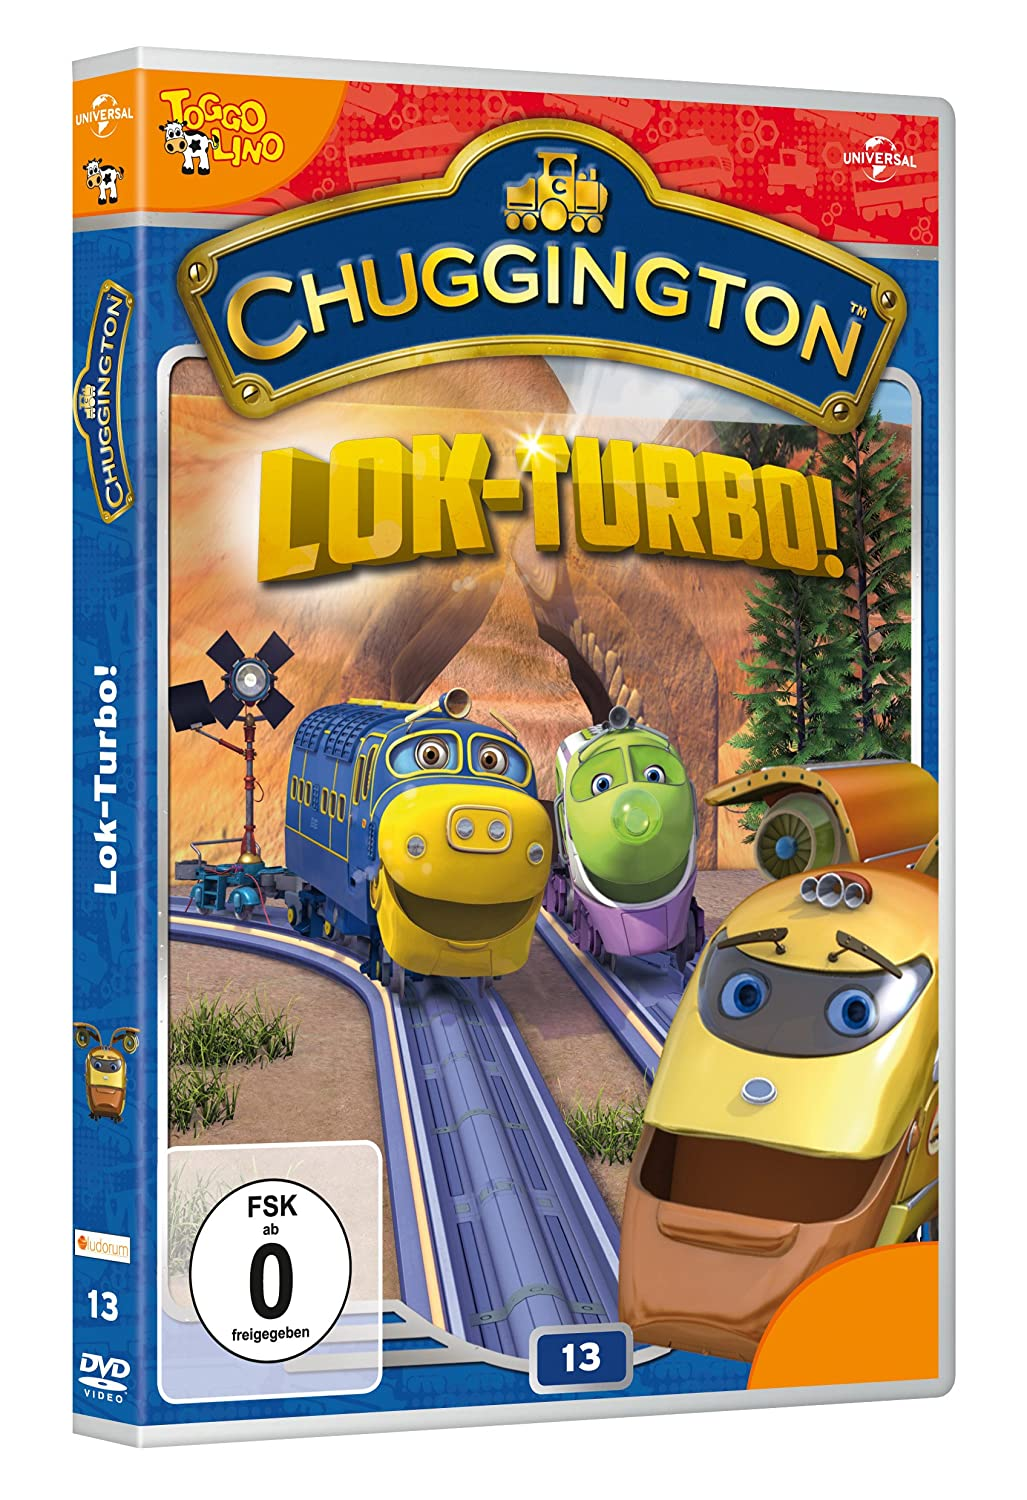 Chuggington 13 - Lock Turbo [Alemania] [DVD]: Amazon.es: Sarah Ball: Cine y Series TV